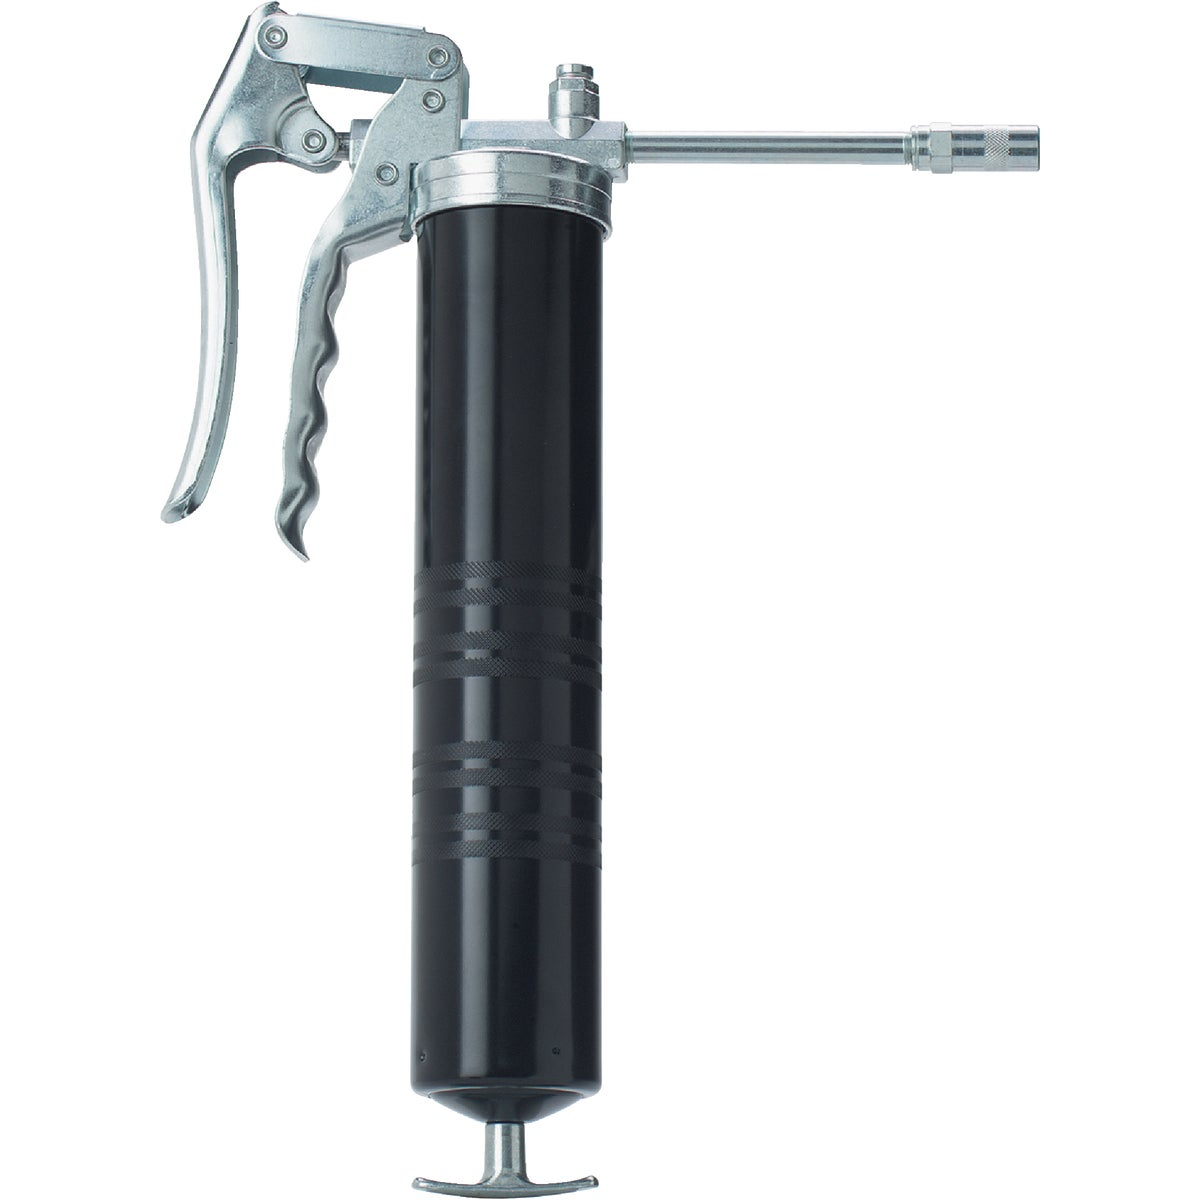 PISTOL GREASE GUN